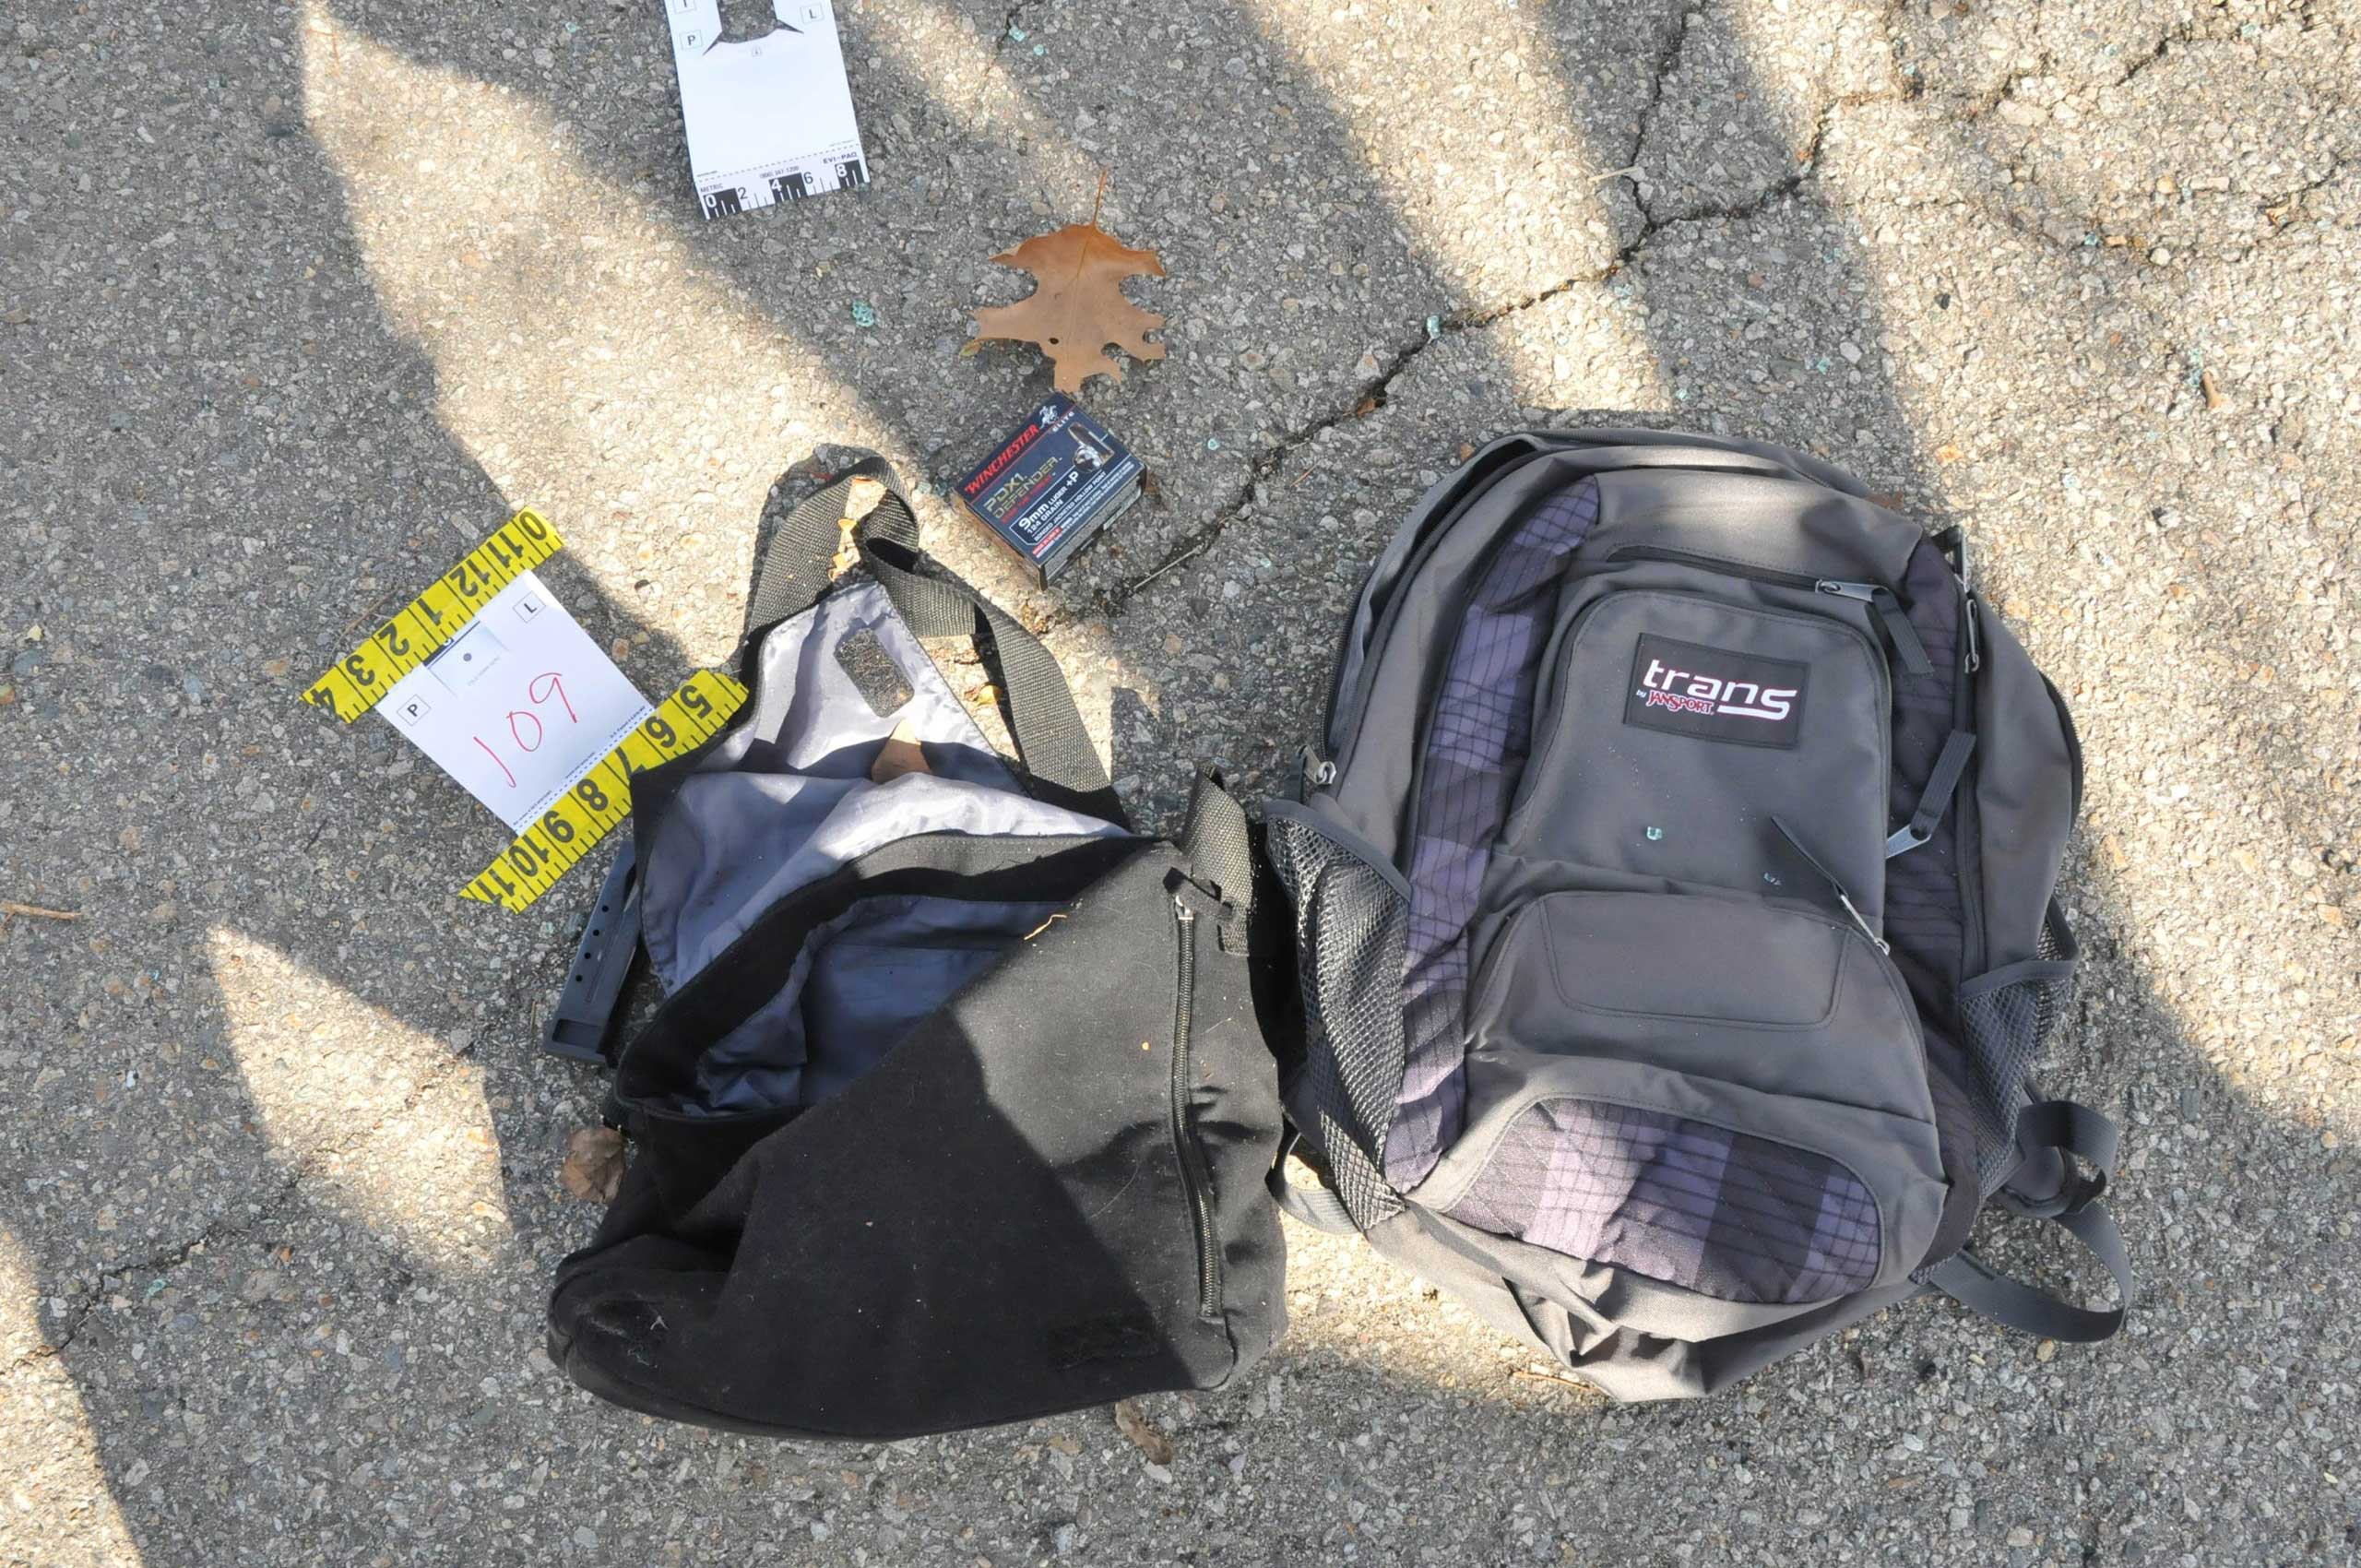 A 9mm Luger clip and bullet package sit next to a backpack and bag on a street where Tamerlan and Dzhokhar Tsarnaev engaged in a gunfight with police.